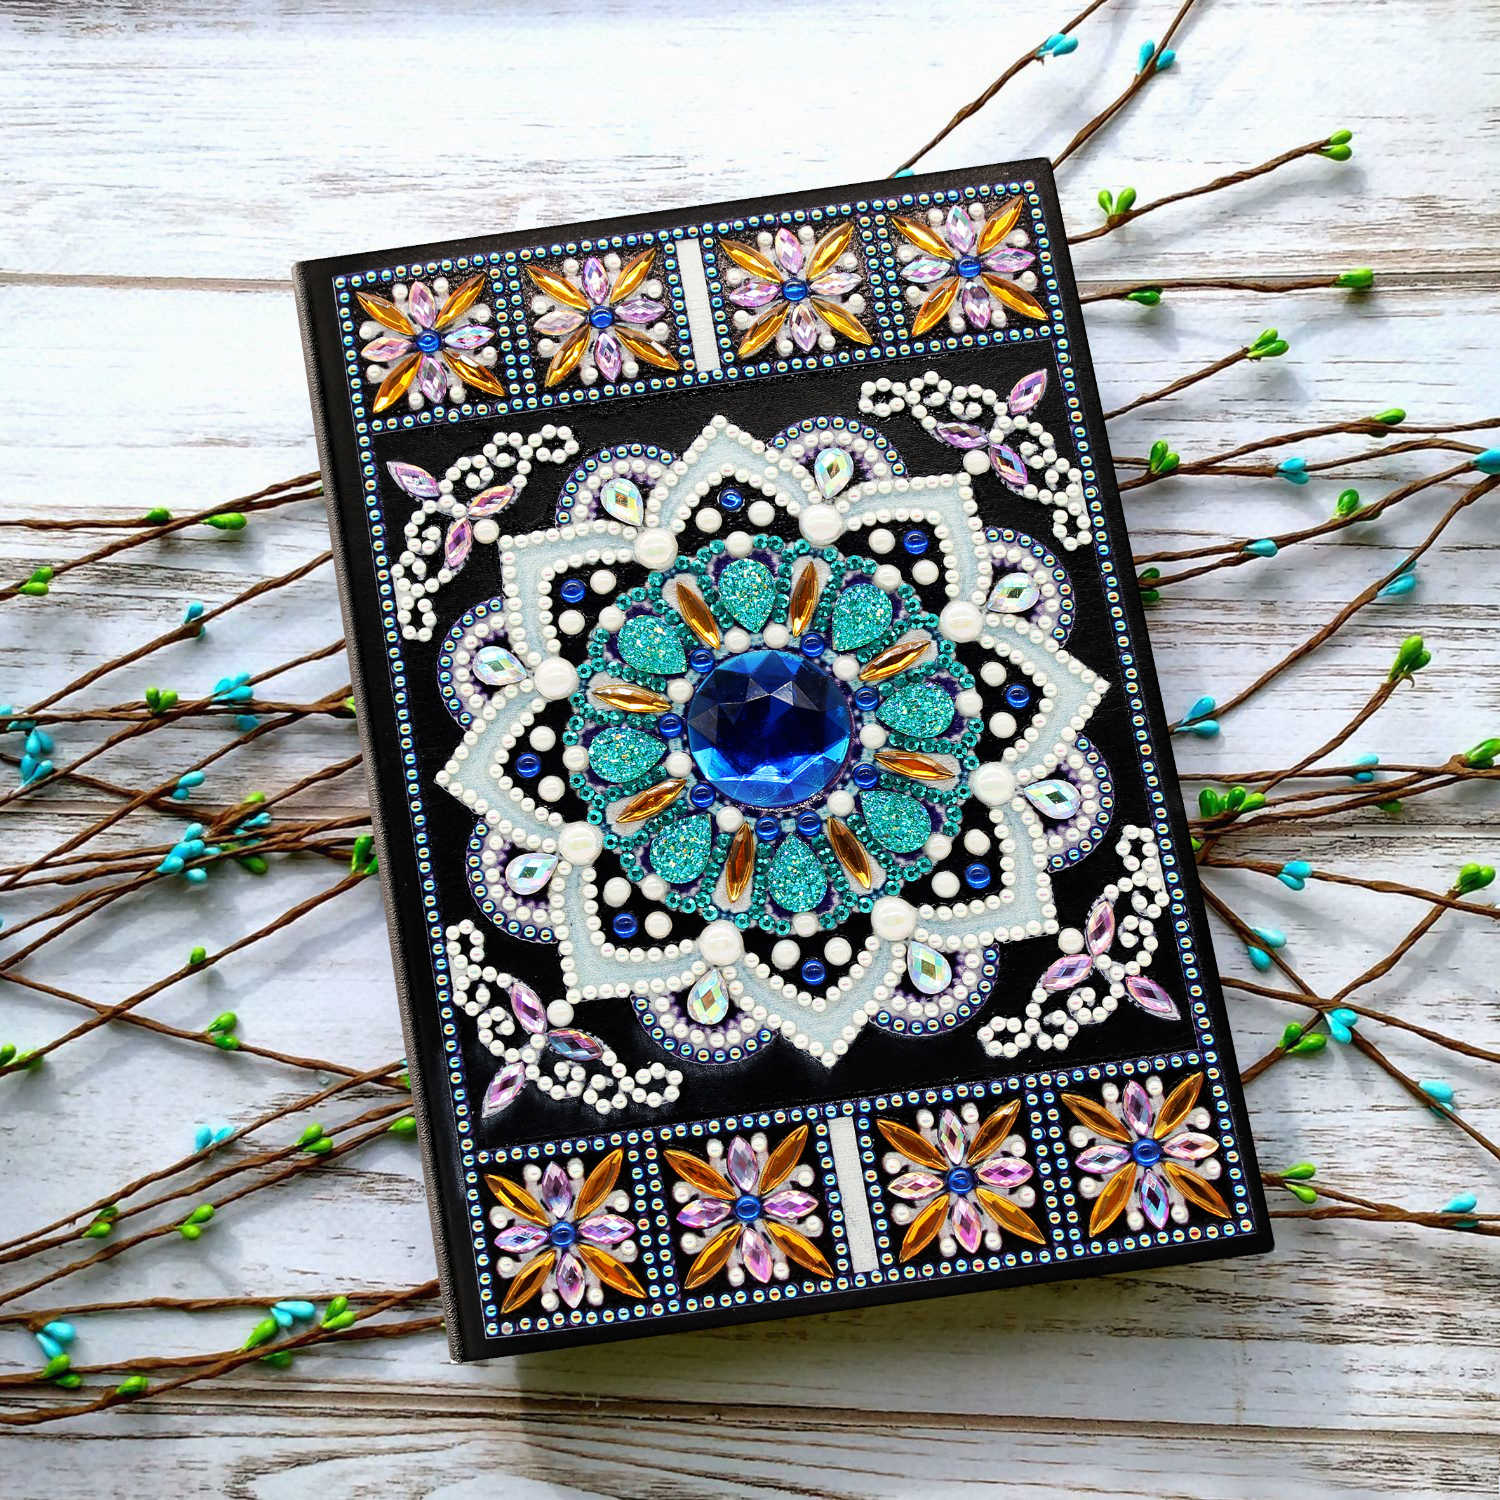 Azqsd Diamond Embroidery Painting Flower A5 Diary Notebook Special